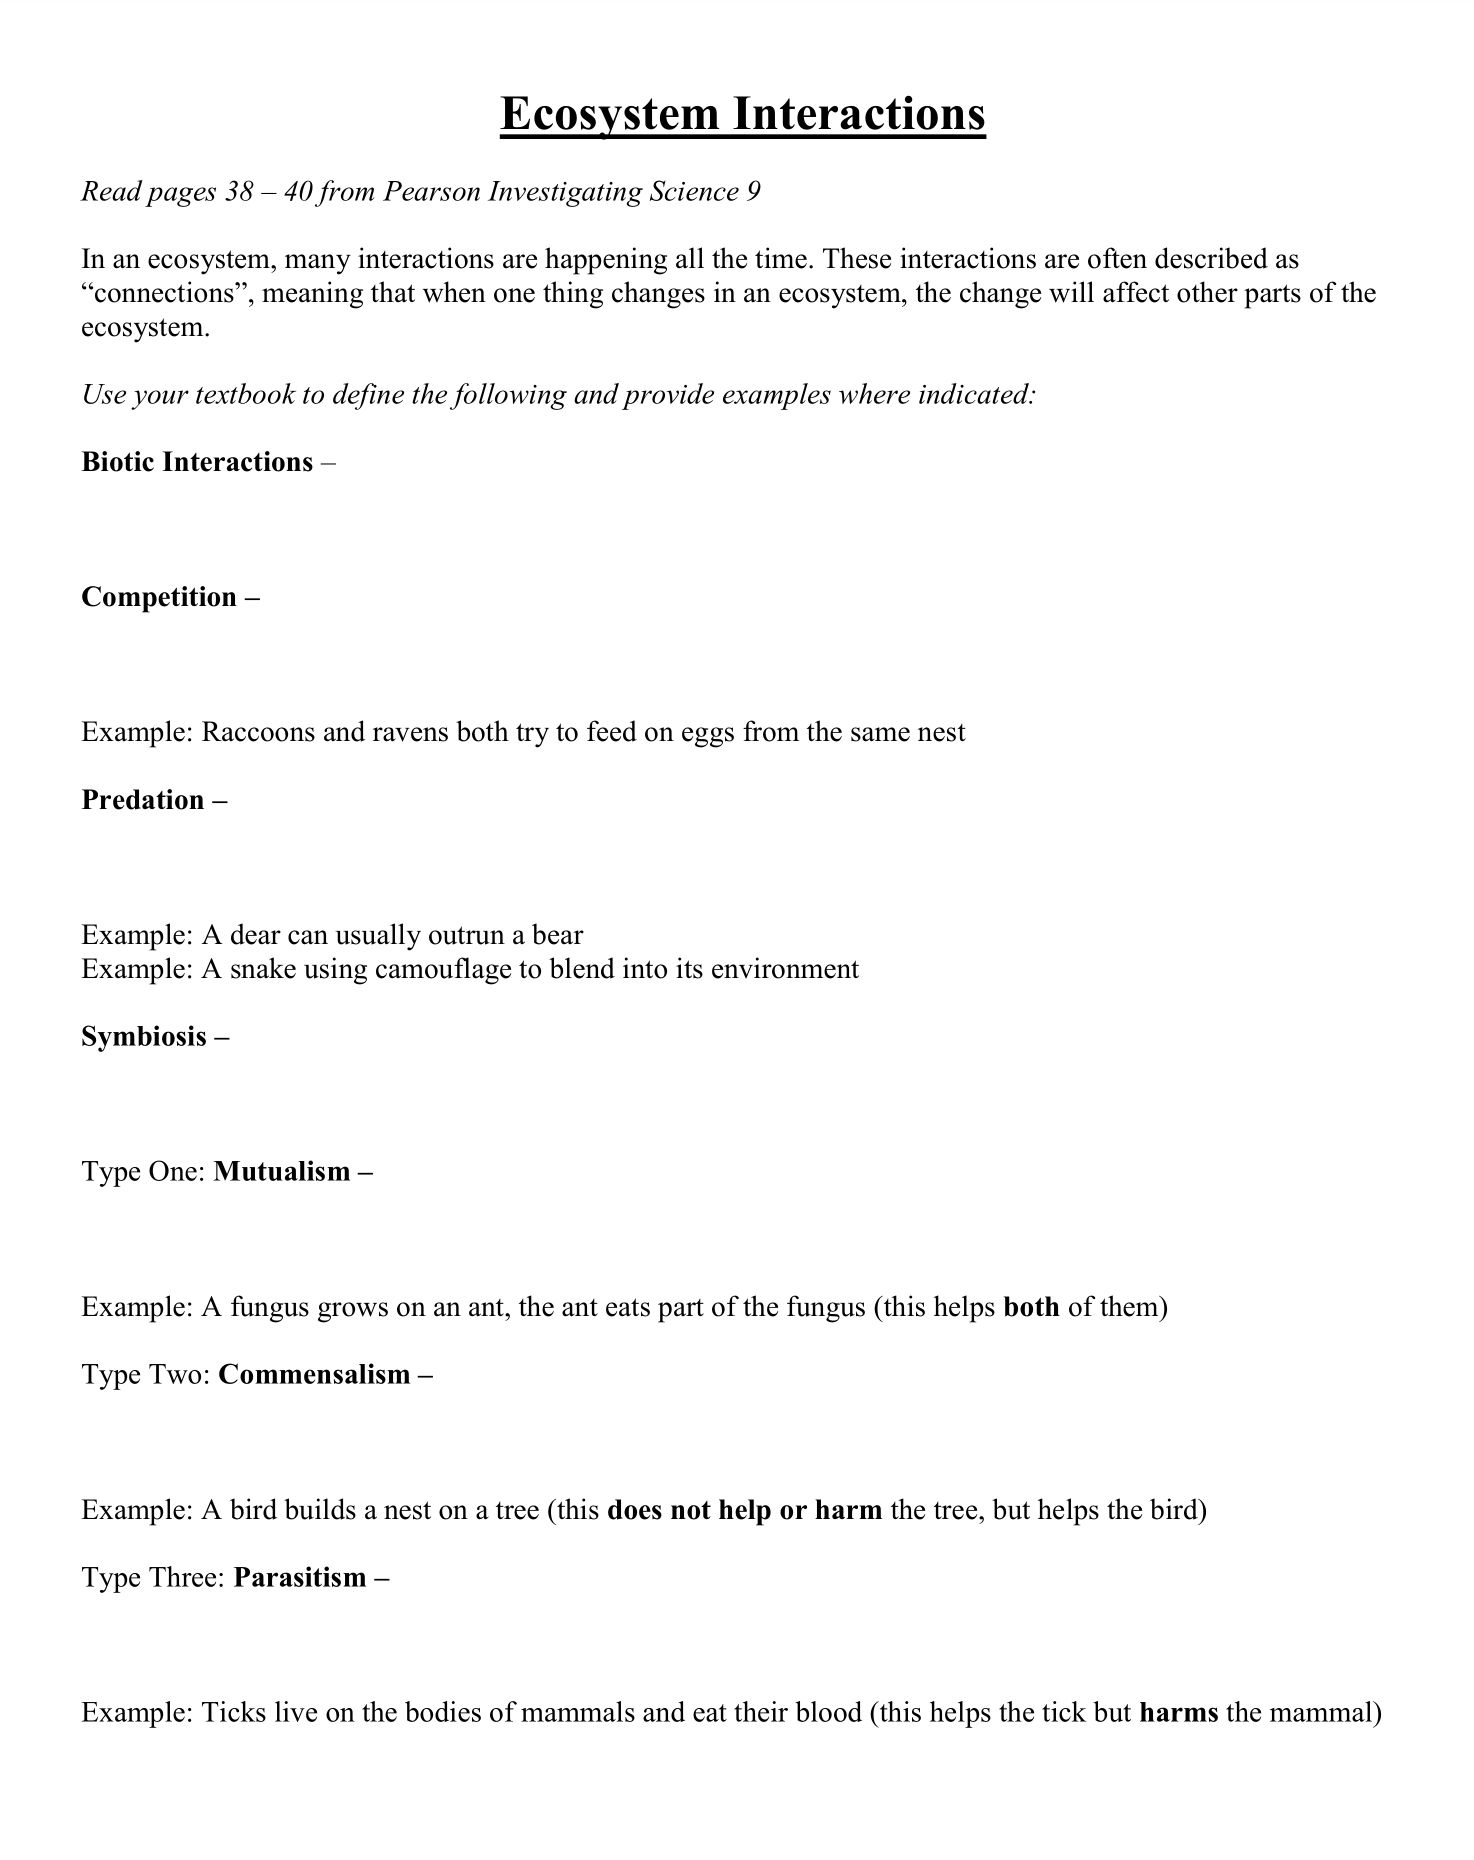 Worksheets Ecosystem Worksheet ecosystem interactions and population characteristics worksheet monday may 28 2018